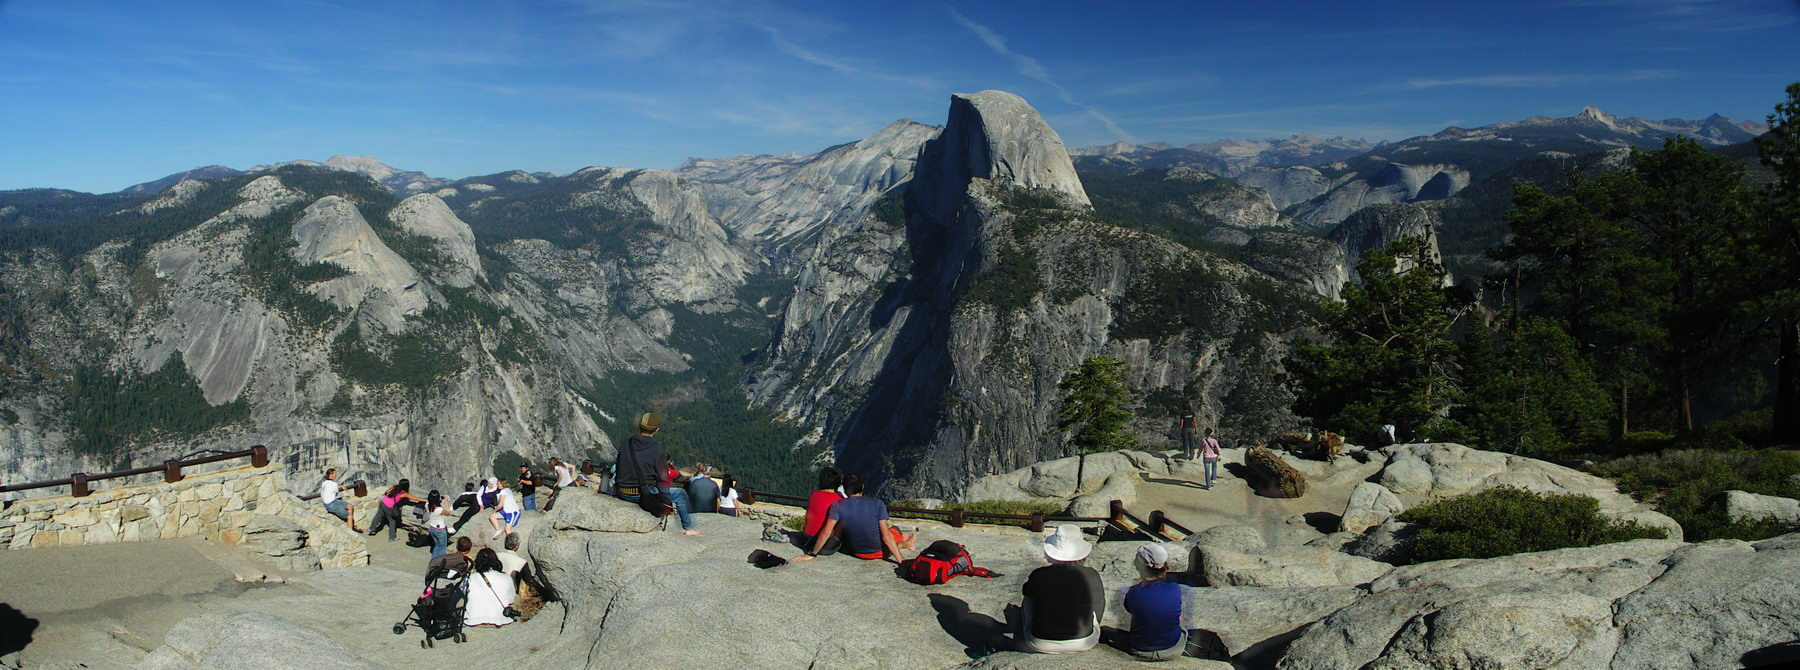 GlacierPoint1_Pano_resize